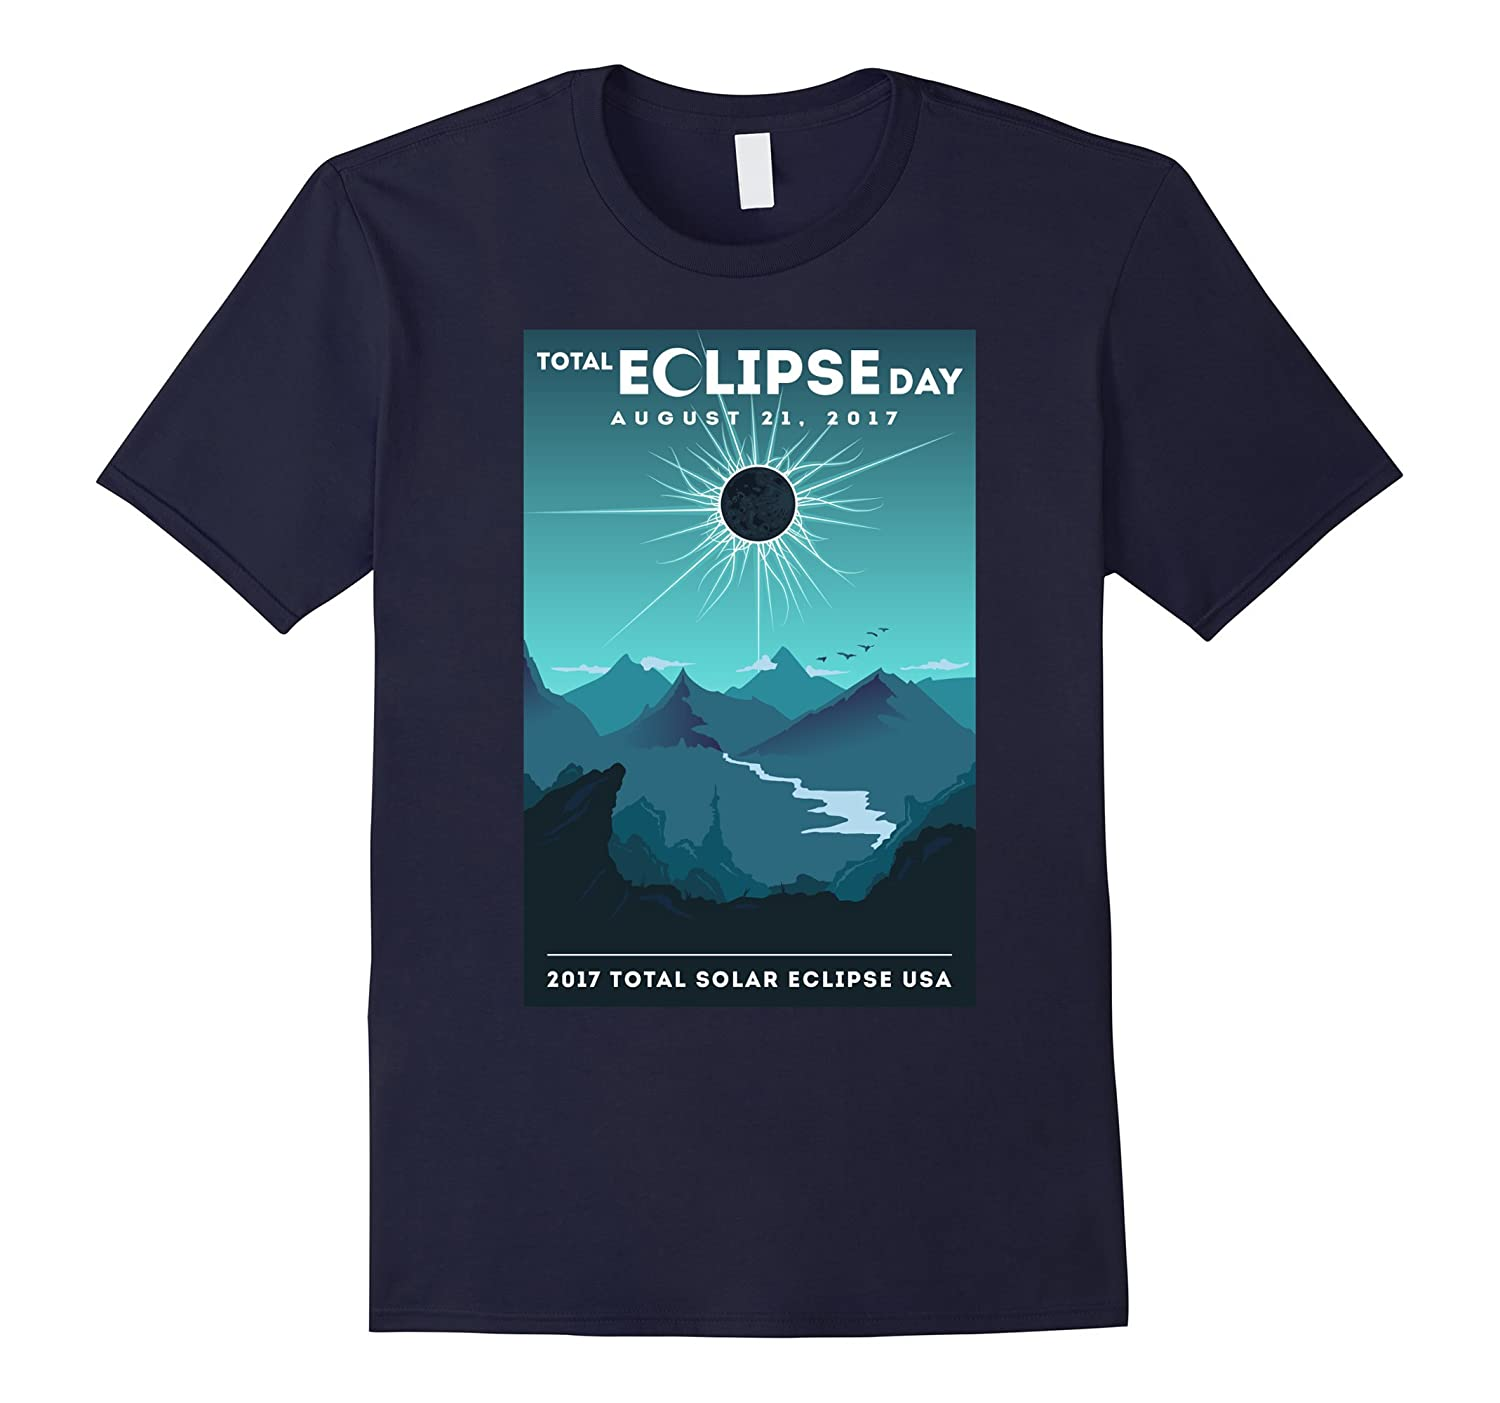 Total Solar Eclipse 2017 T Shirt | Total Eclipse Day Tee-BN